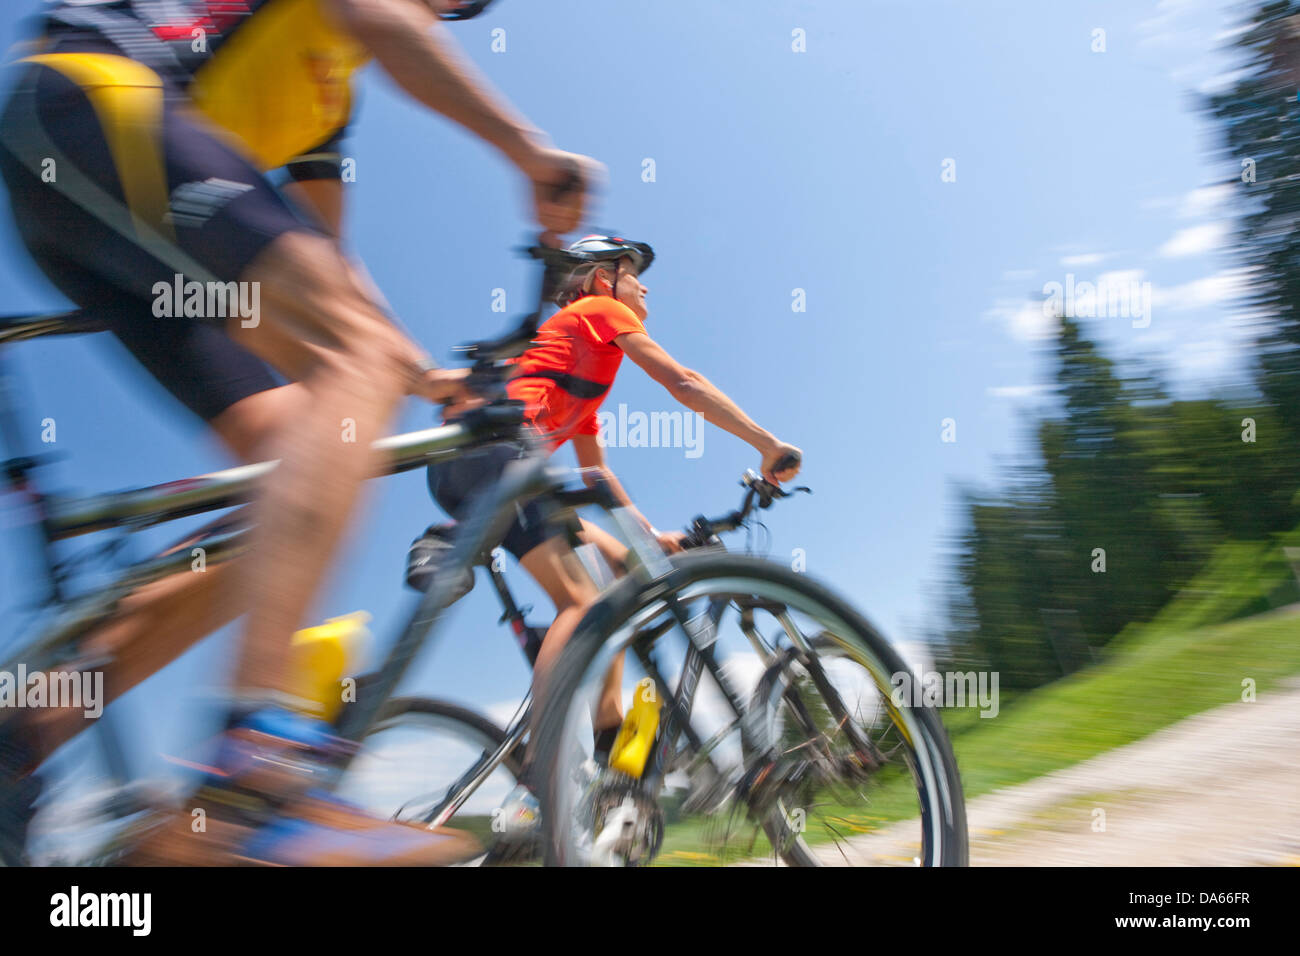 Bicycle tour, mountain bikes, Parc vaudoise jurassienne, Val de Joux, bicycle, bicycles, bike, riding a bicycle, Stock Photo